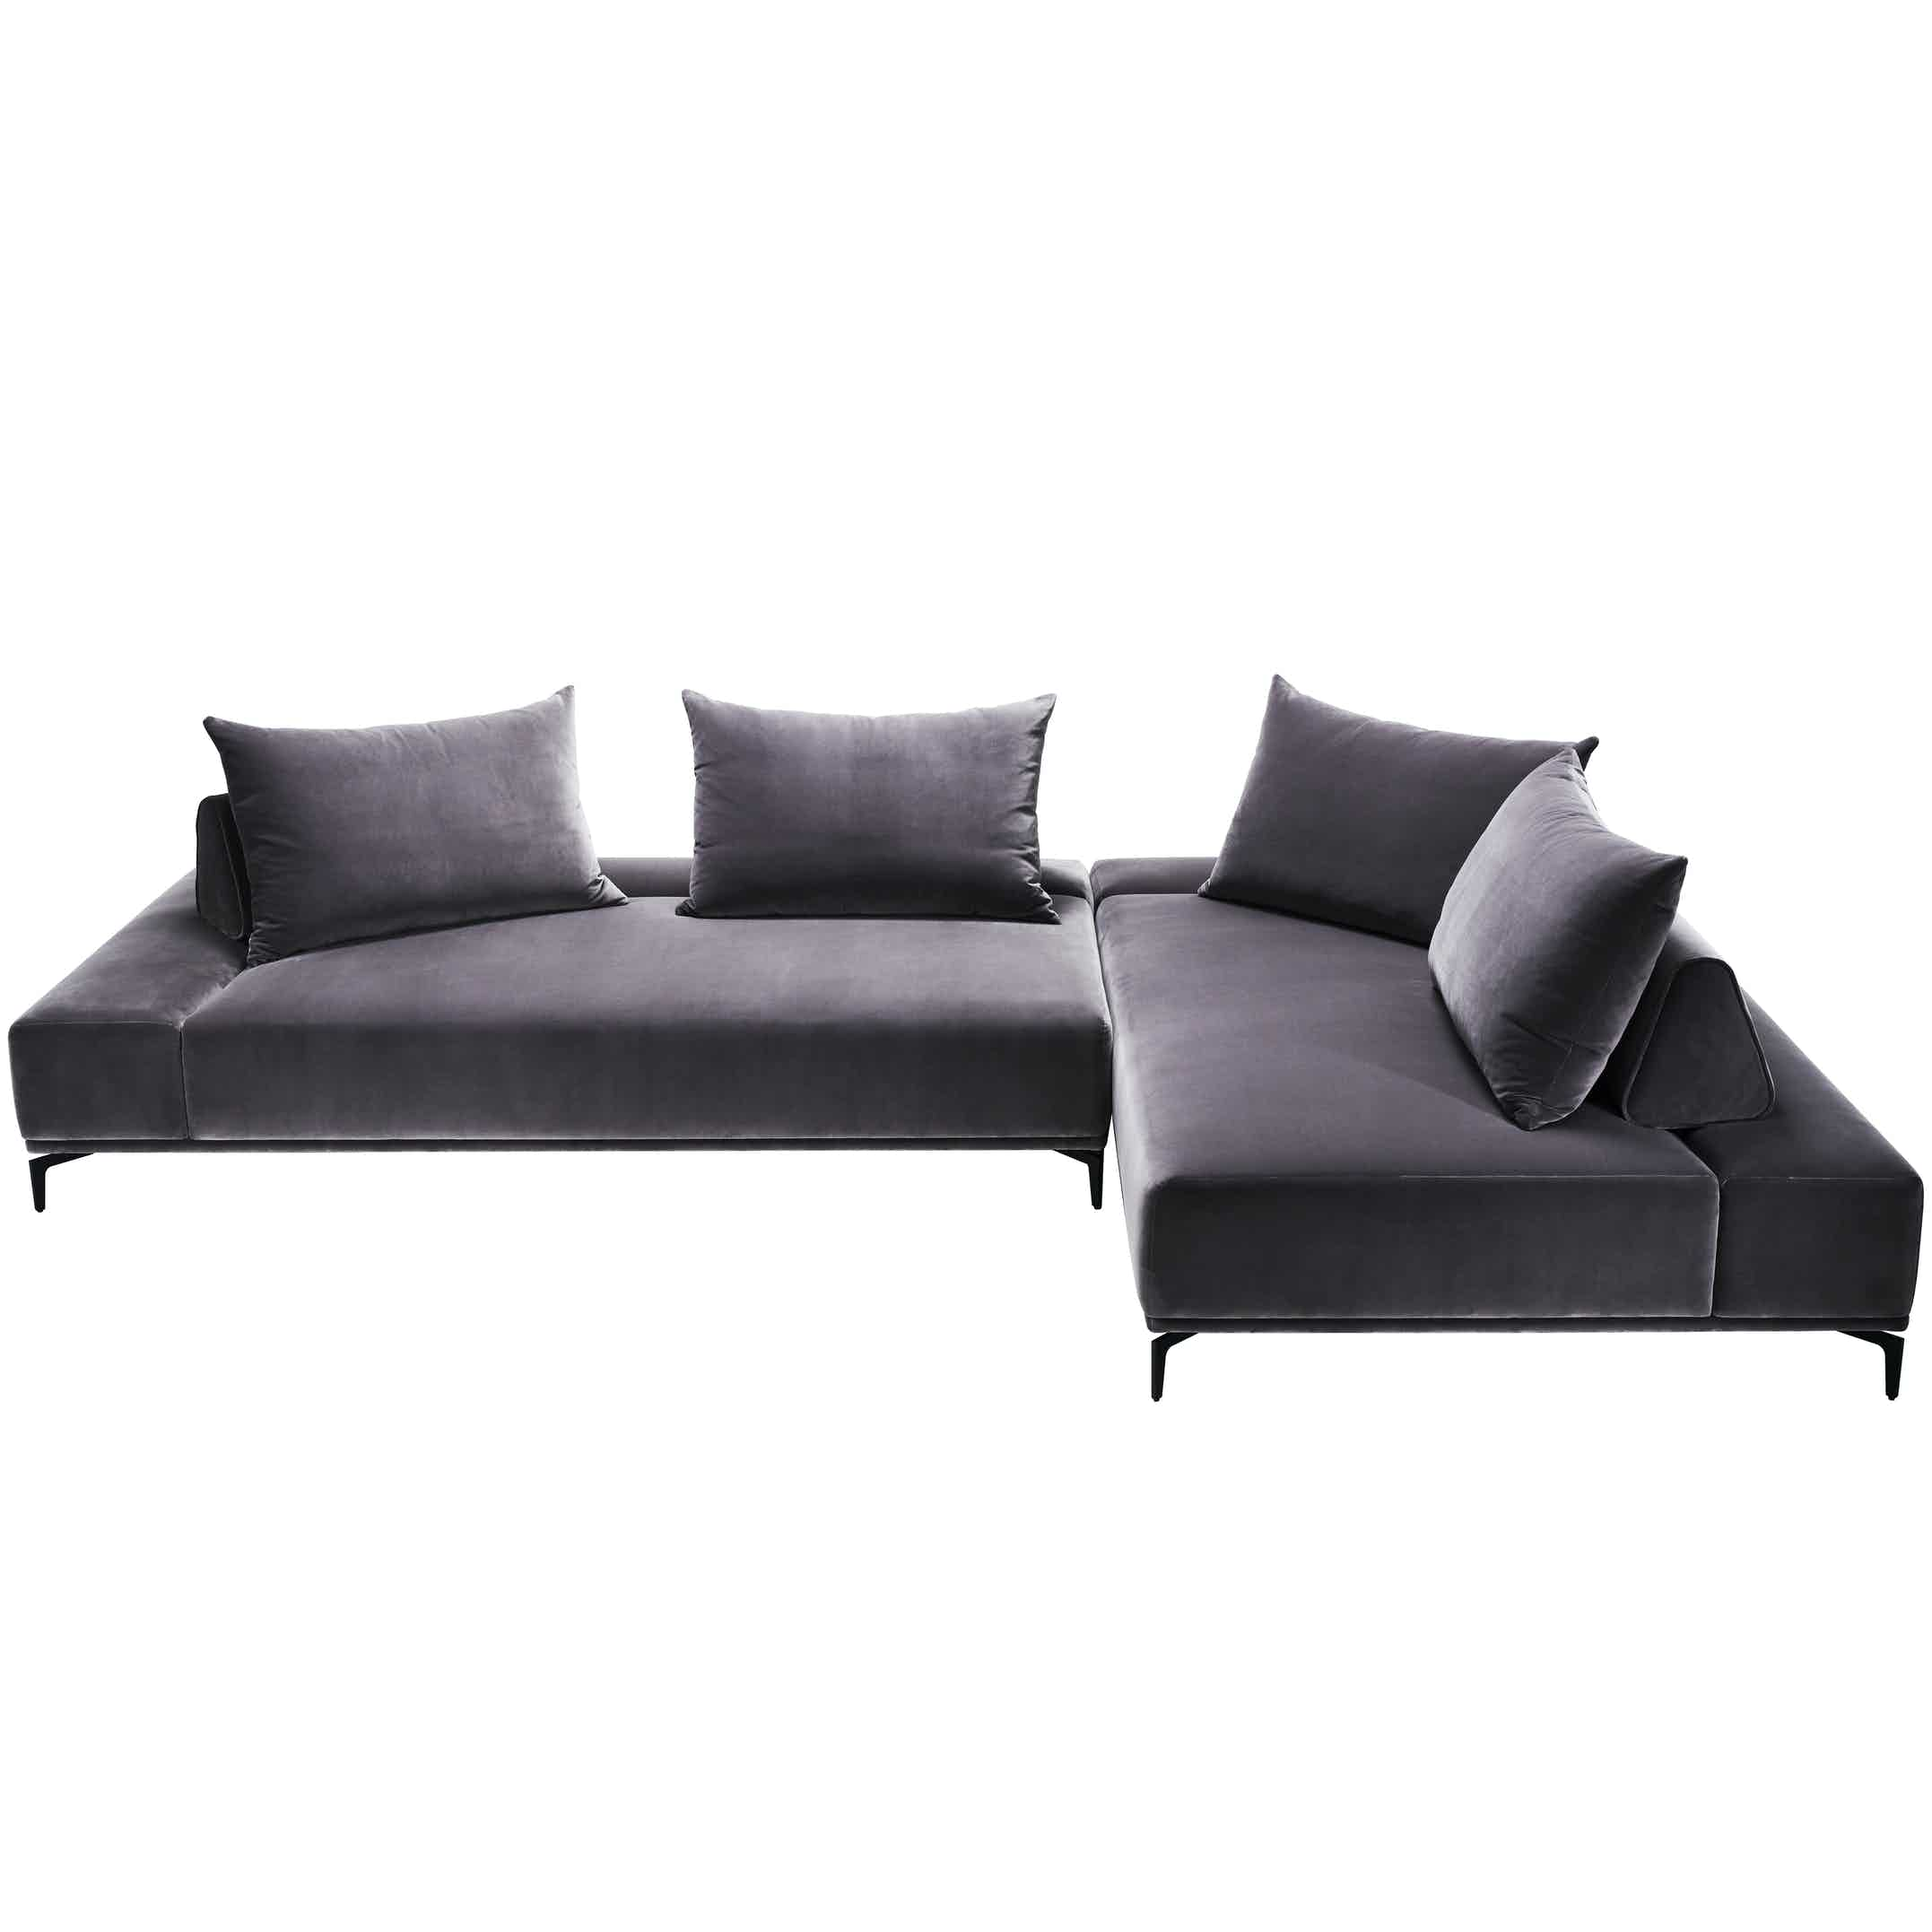 Wendelbo-define-sofa-thumbnail-haute-living